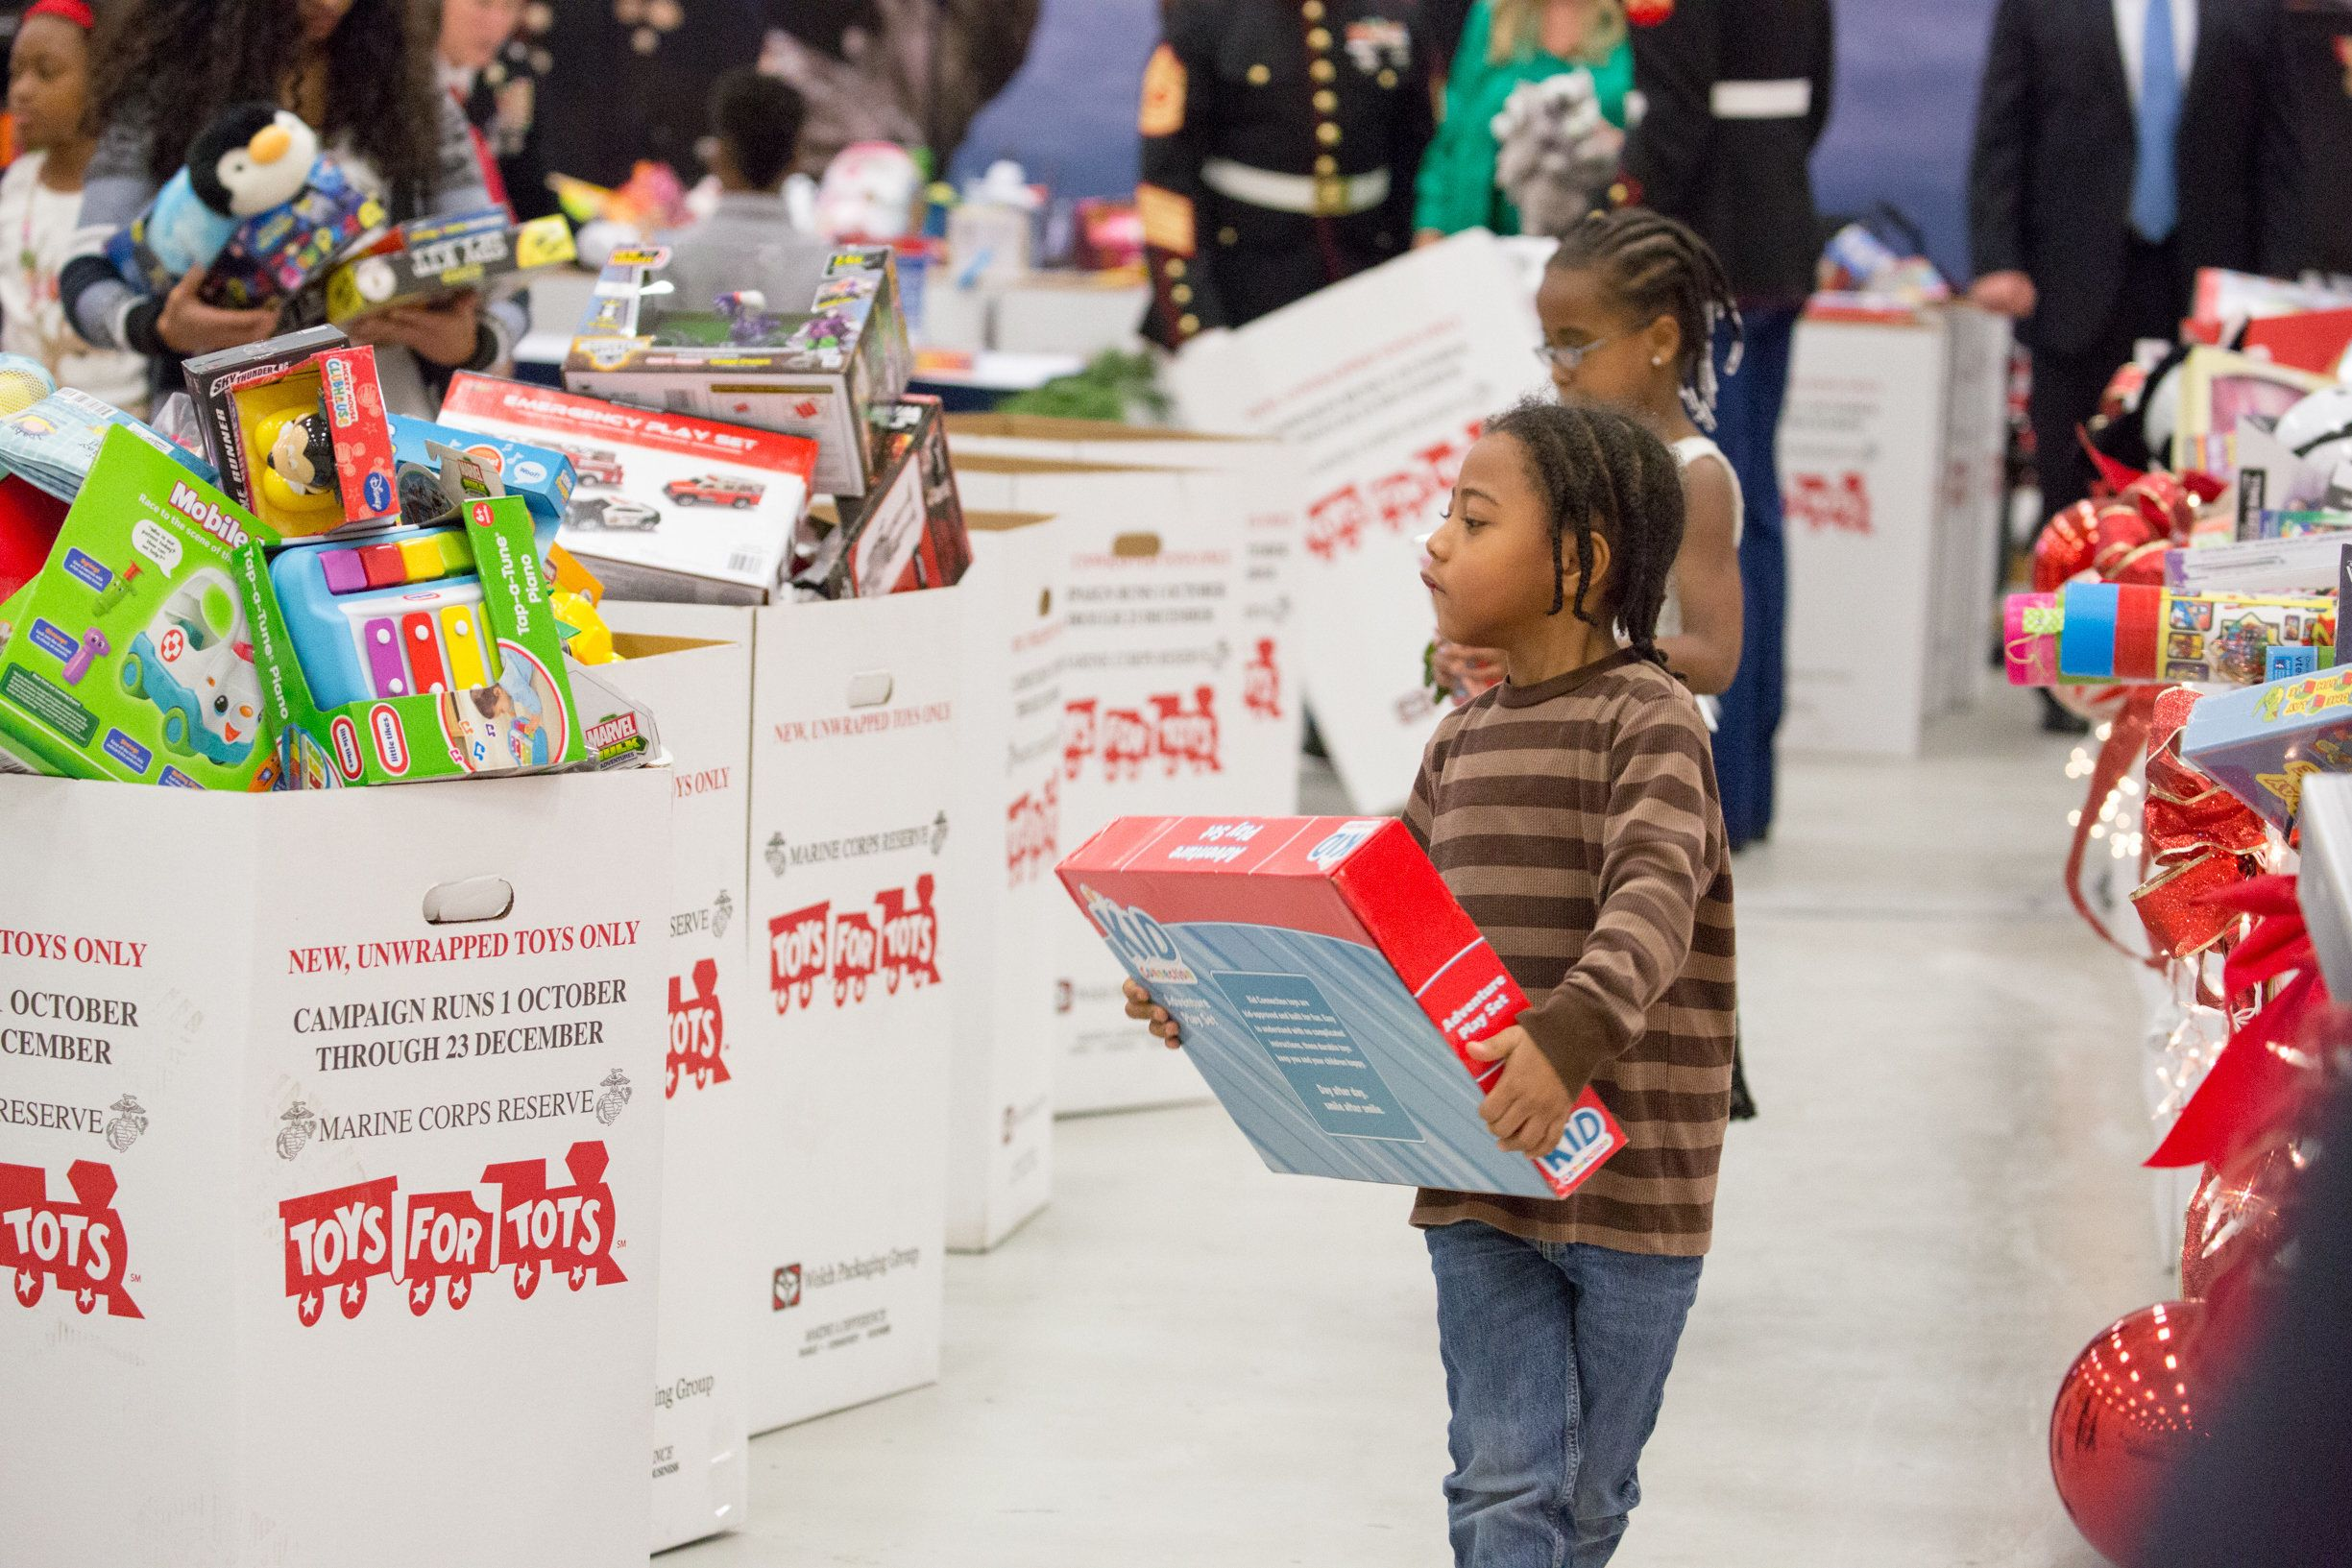 9 Ways To Donate A Gift To A Child In Need This Holiday